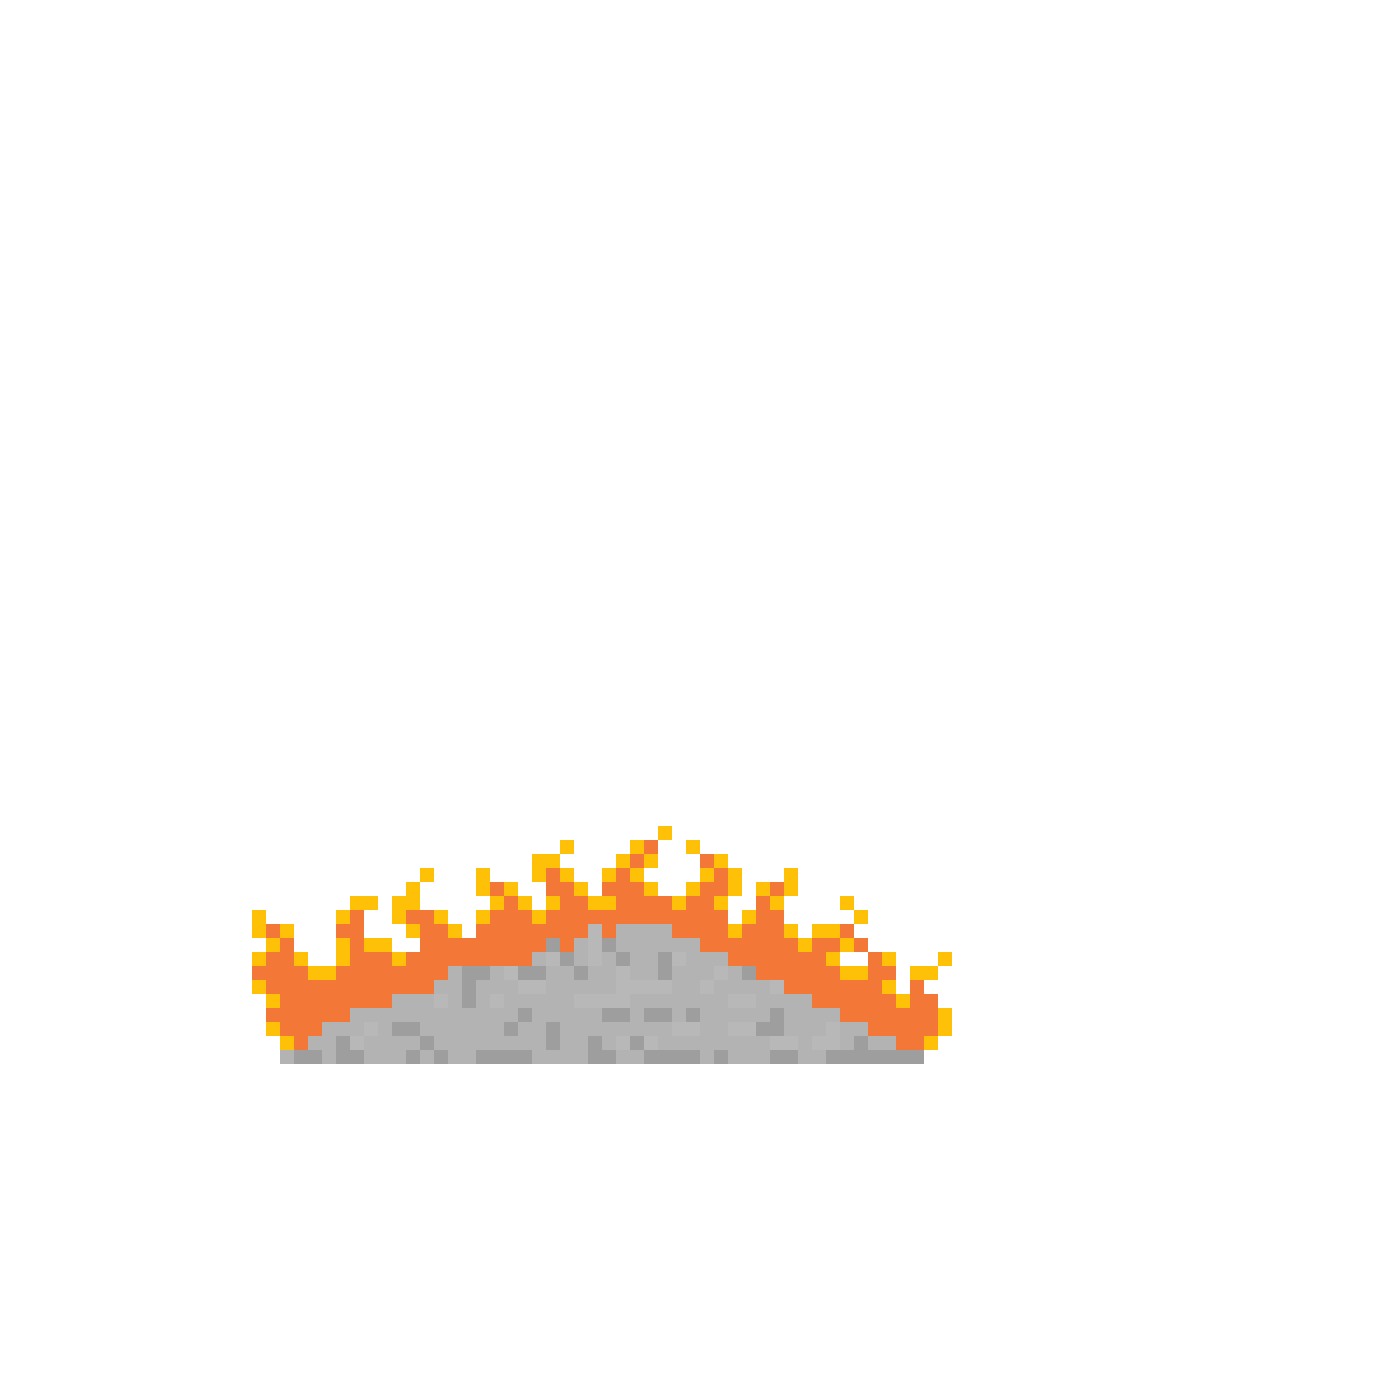 Fire ashes png. Pixilart with yellow by